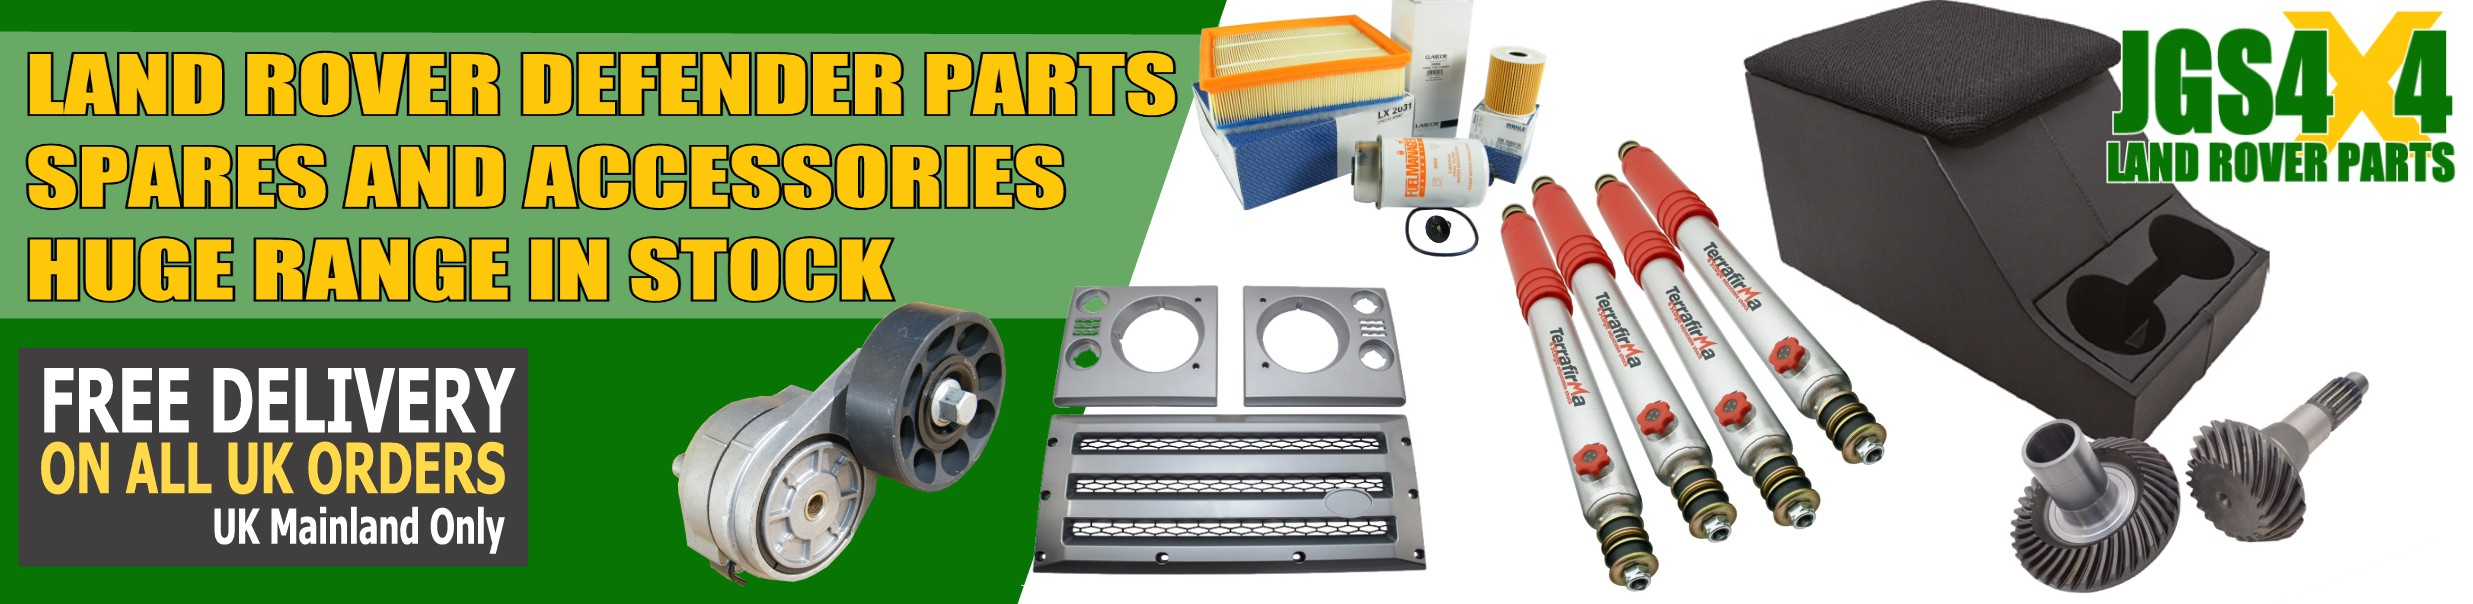 Land Rover Defender Parts, Spares and Accessories. Huge range in stock.